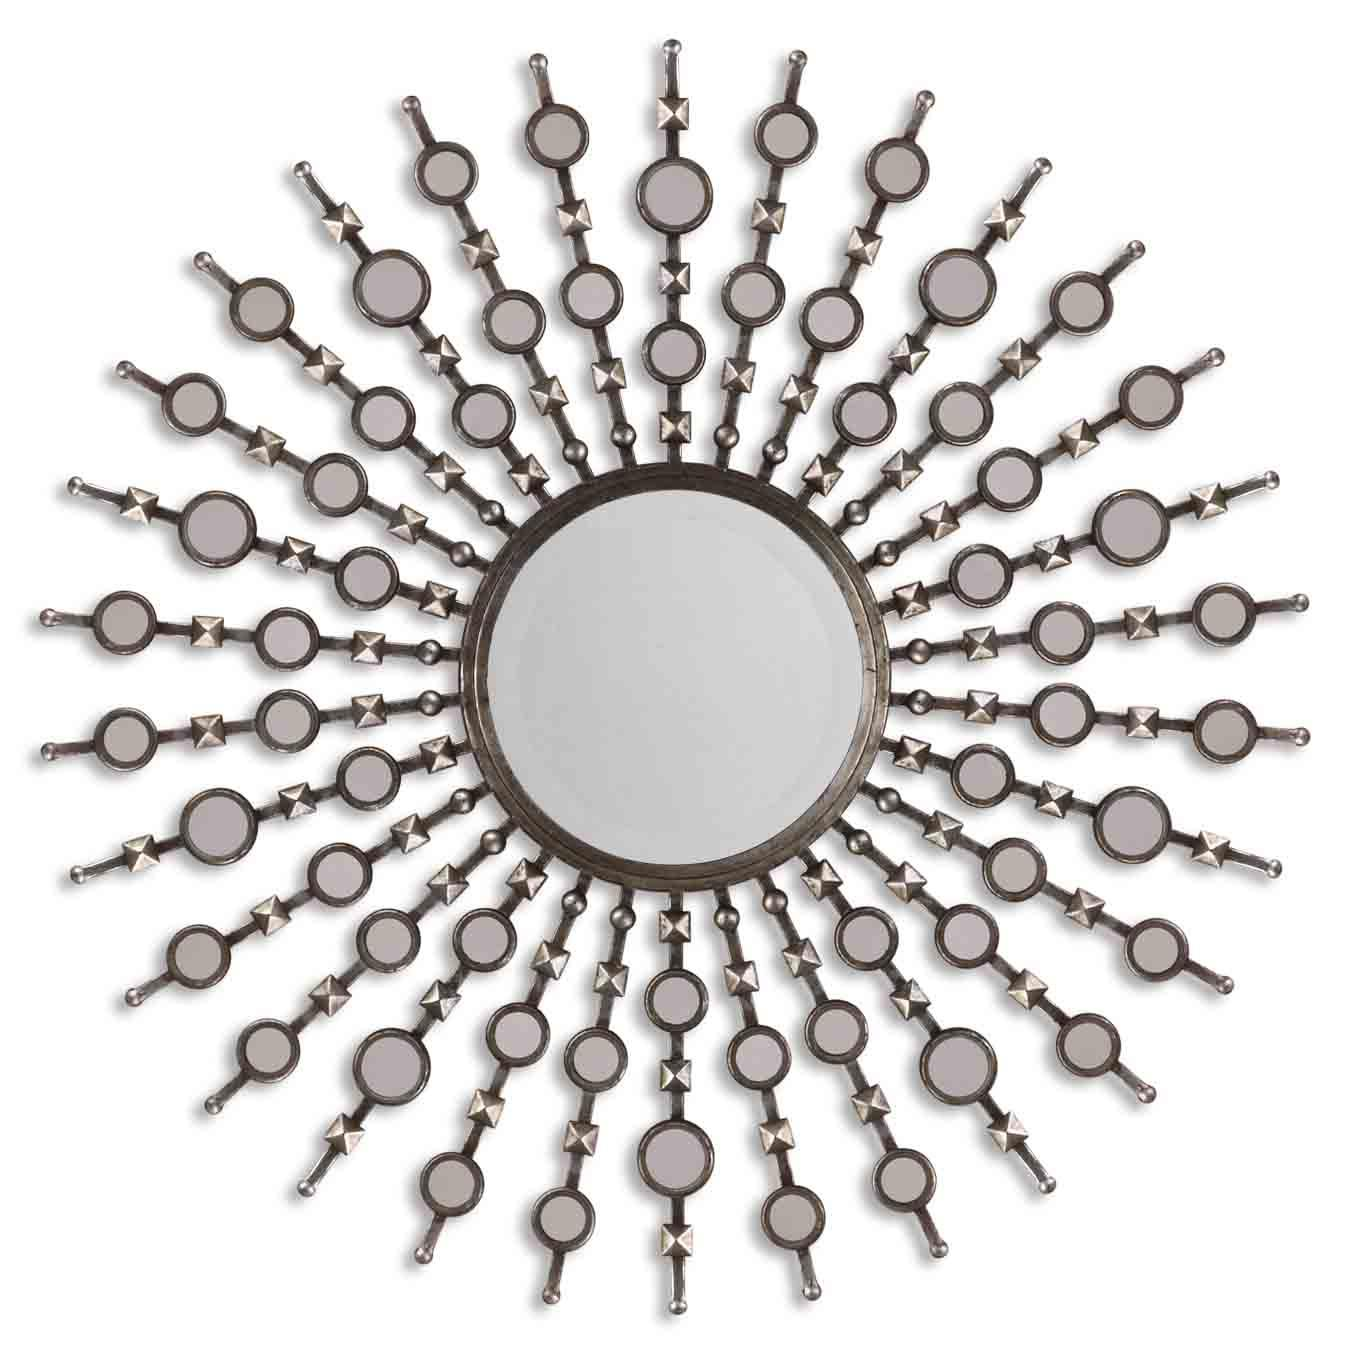 Uttermost Mirrors Kimani - Item Number: 13581 B